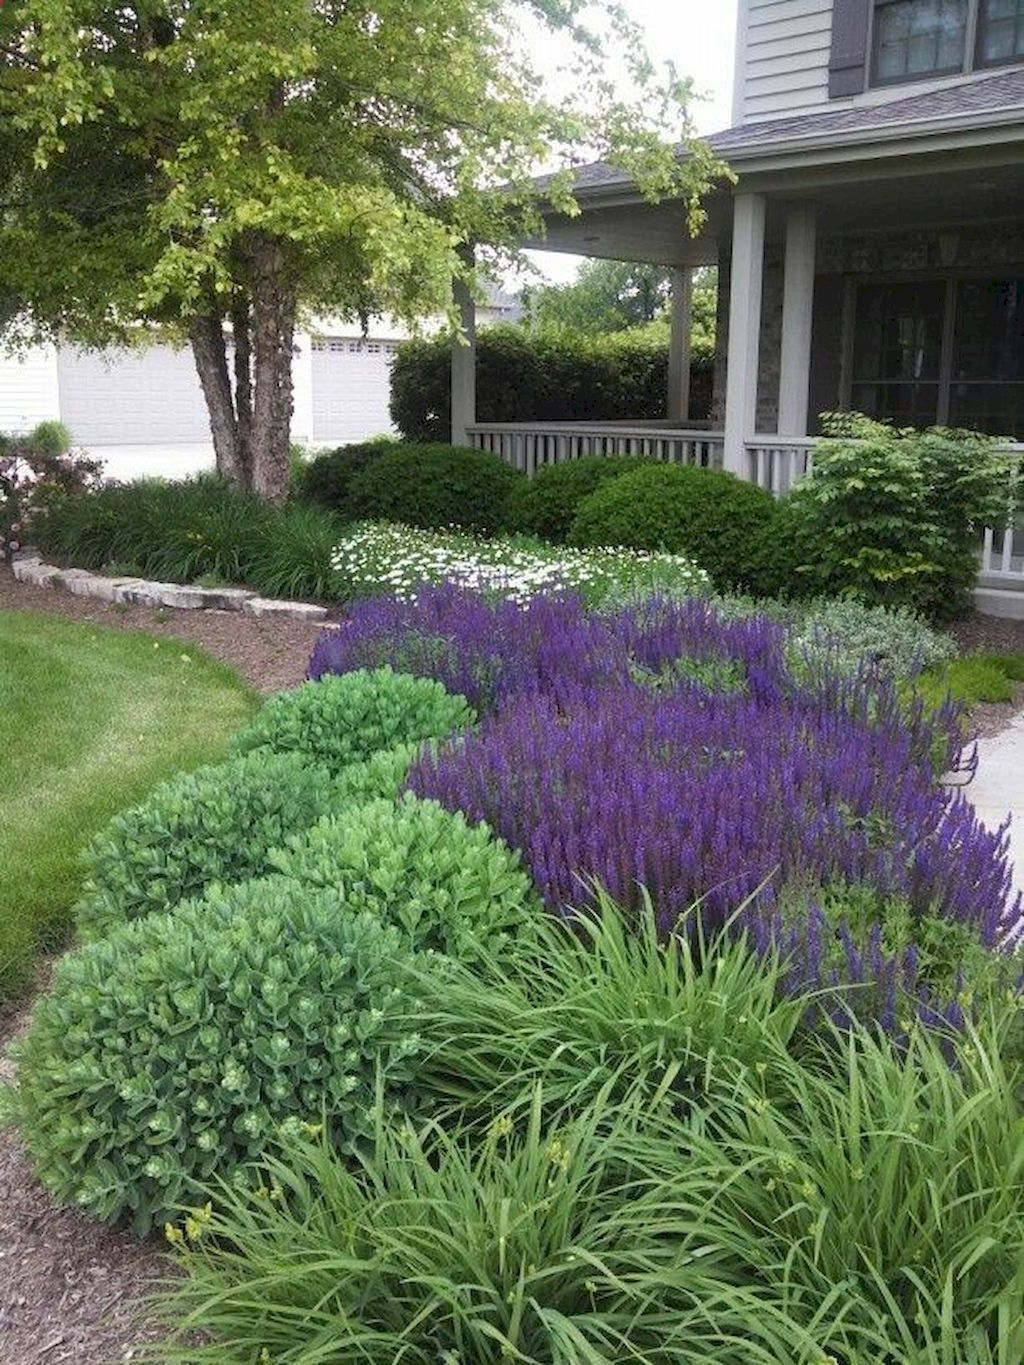 Gorgeous cheap landscaping ideas for your front yard that will